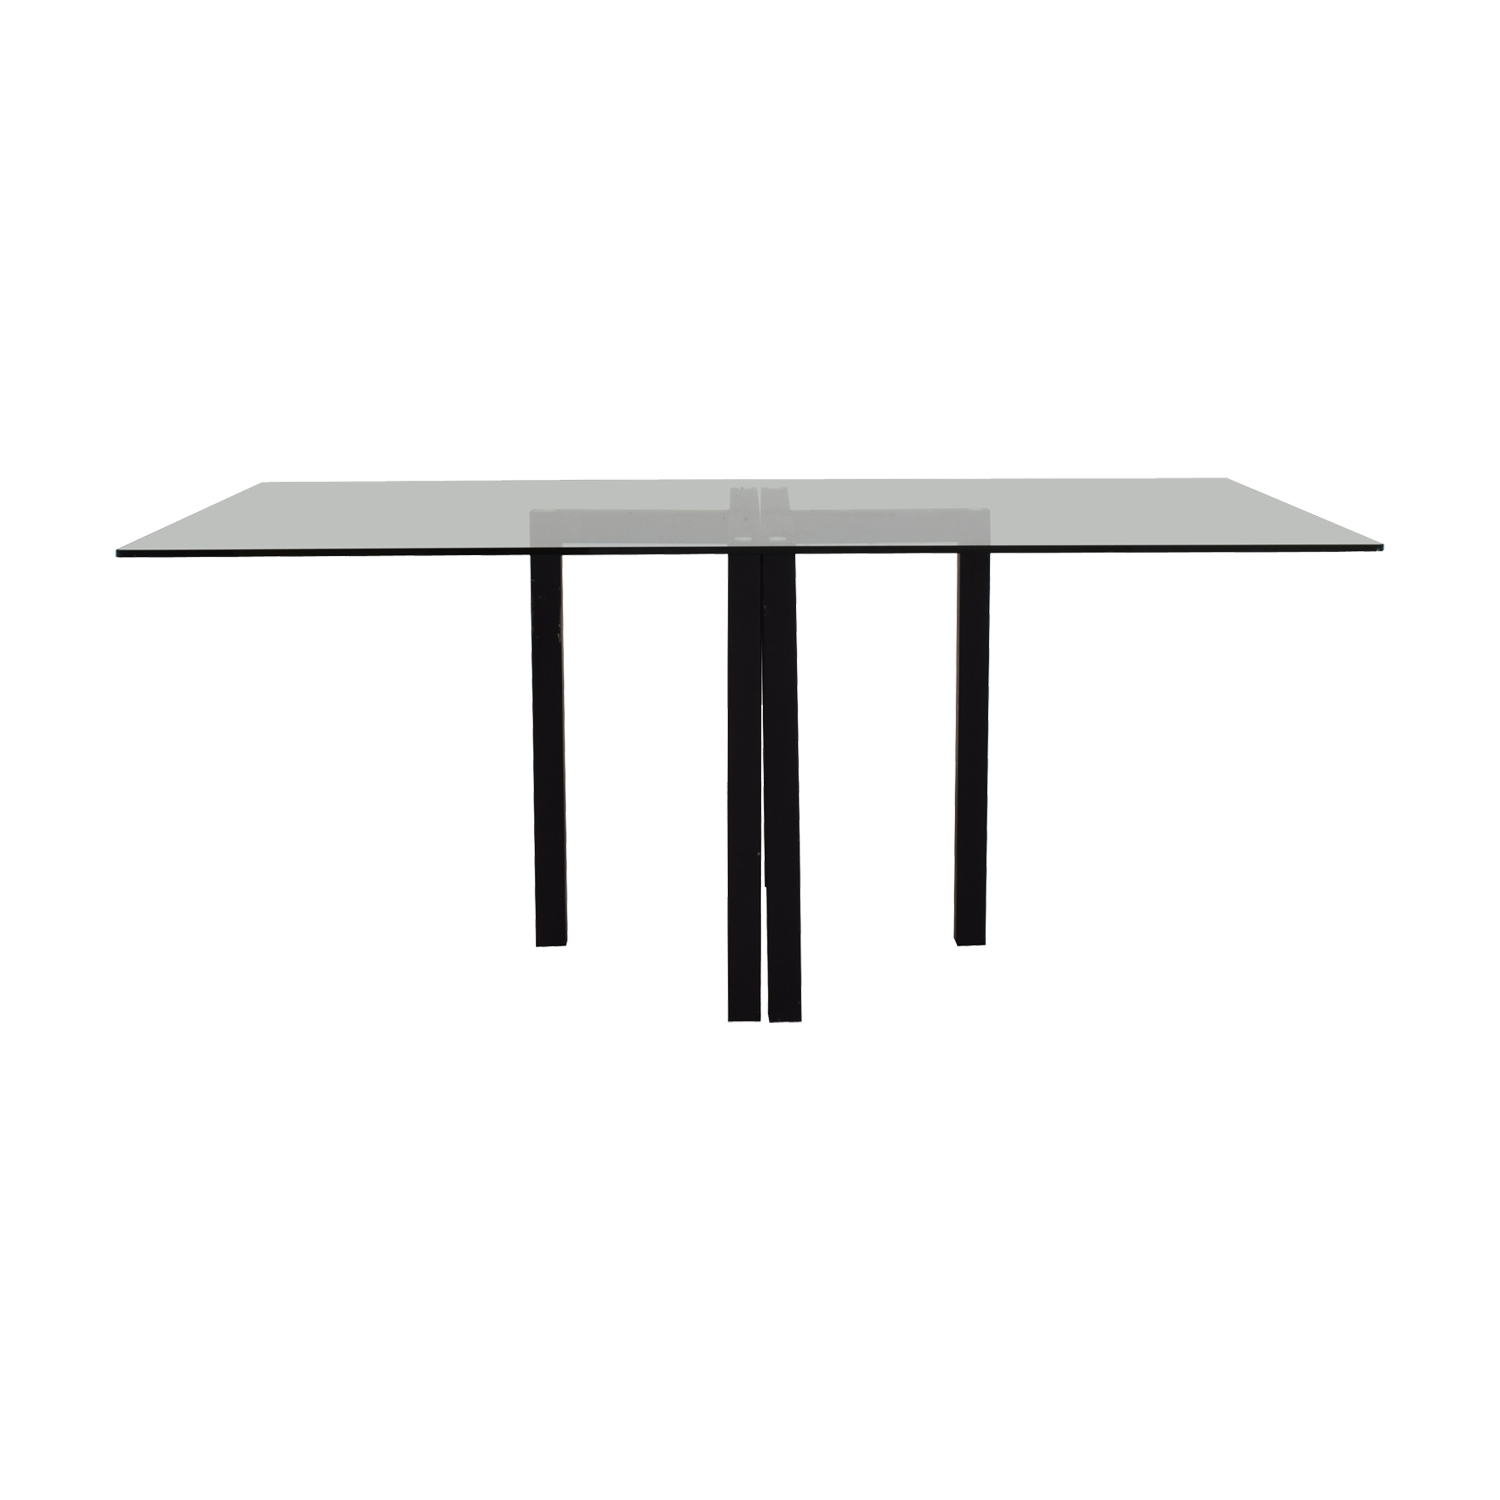 Crate & Barrel Crate & Barrel Glass Dining Table or Desk Tables